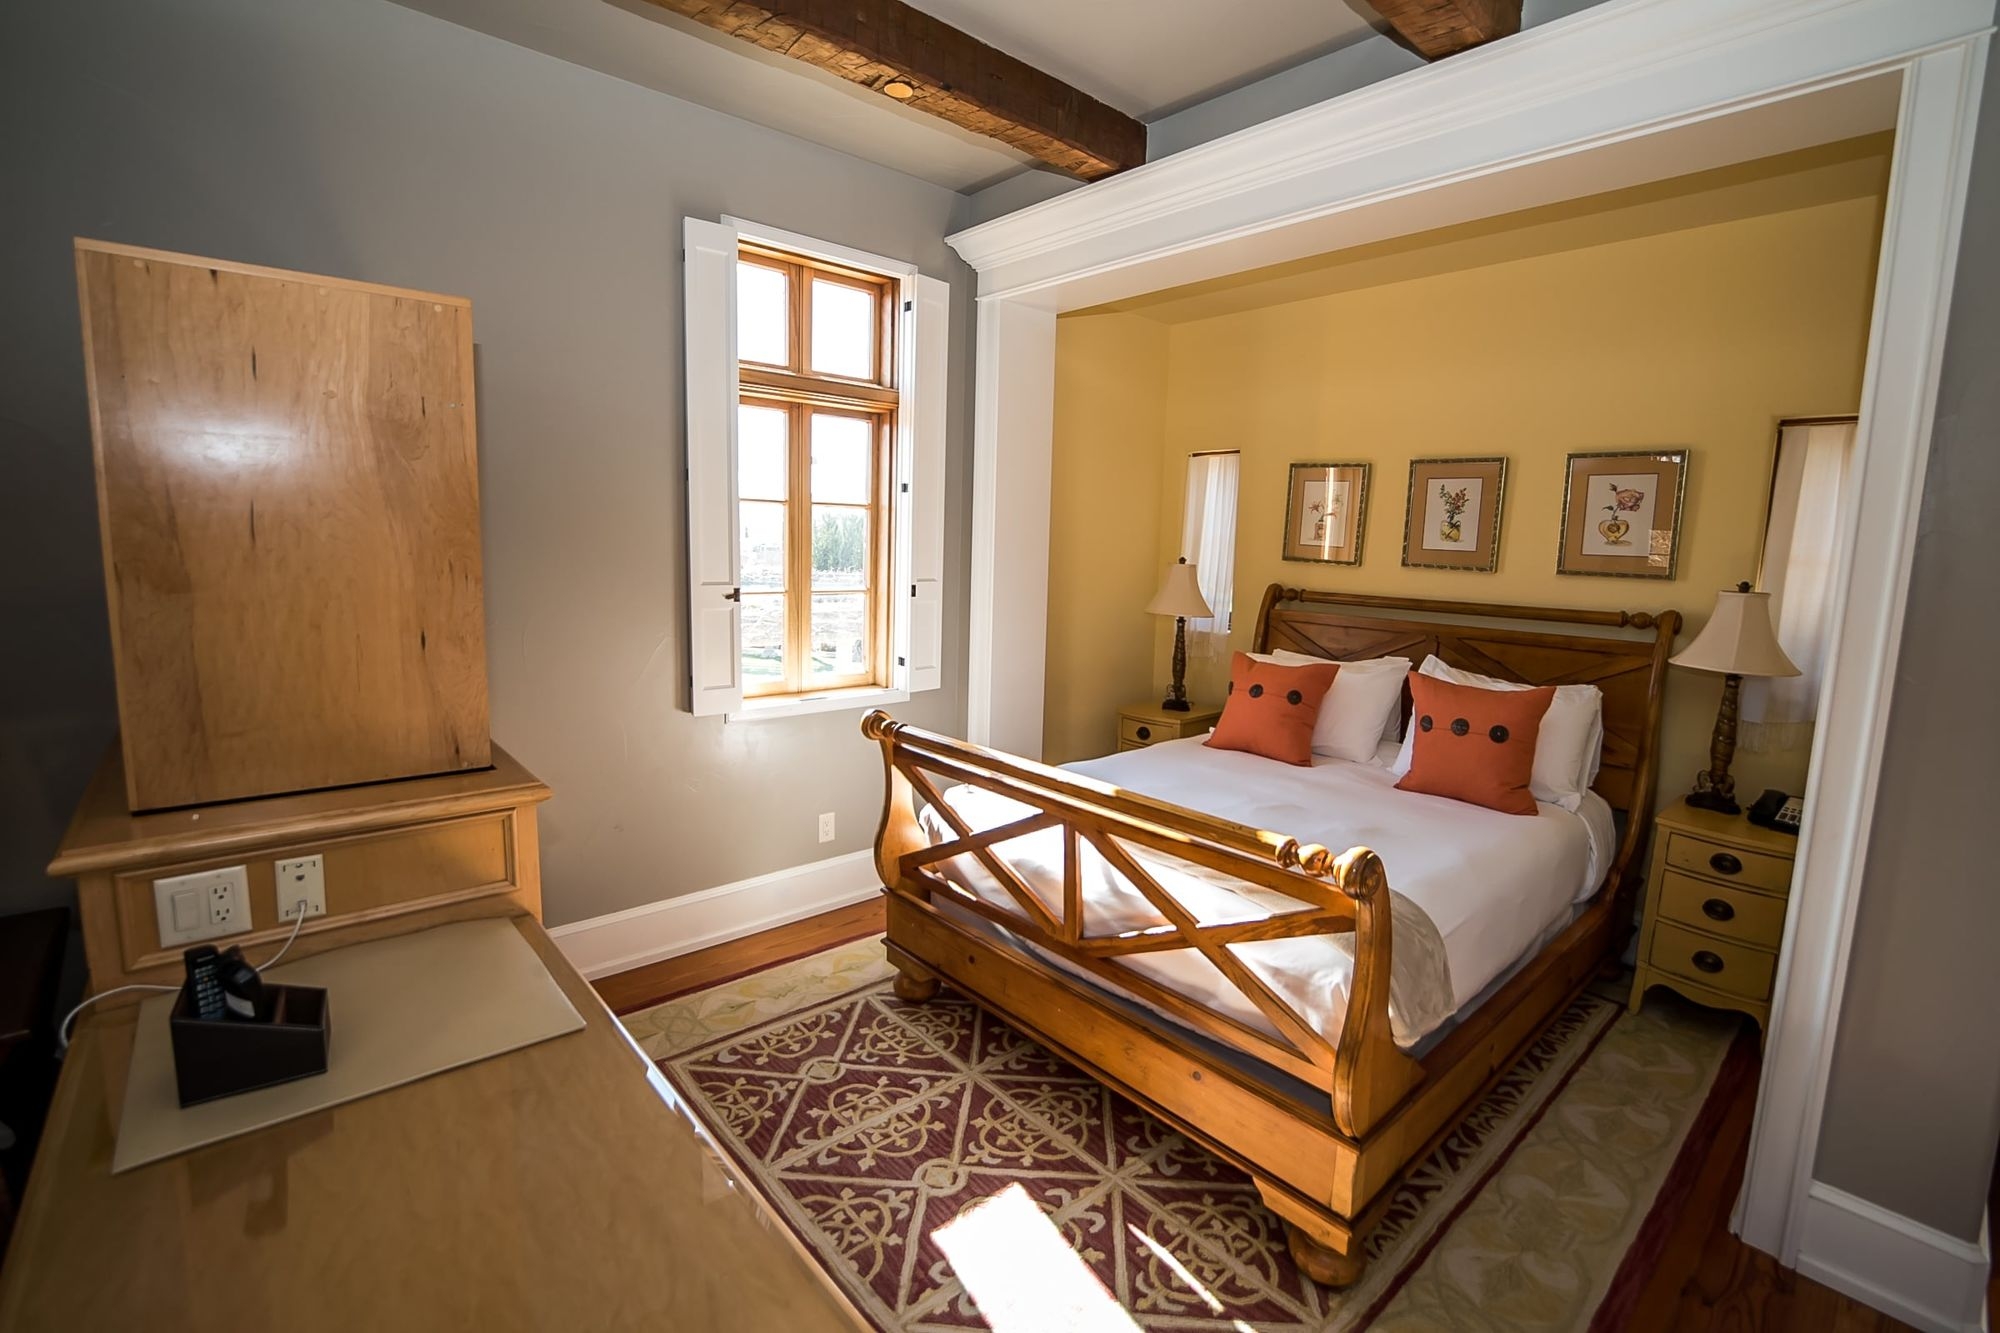 Bed room space with sleigh bed made up with white sheets and orange accent pillows